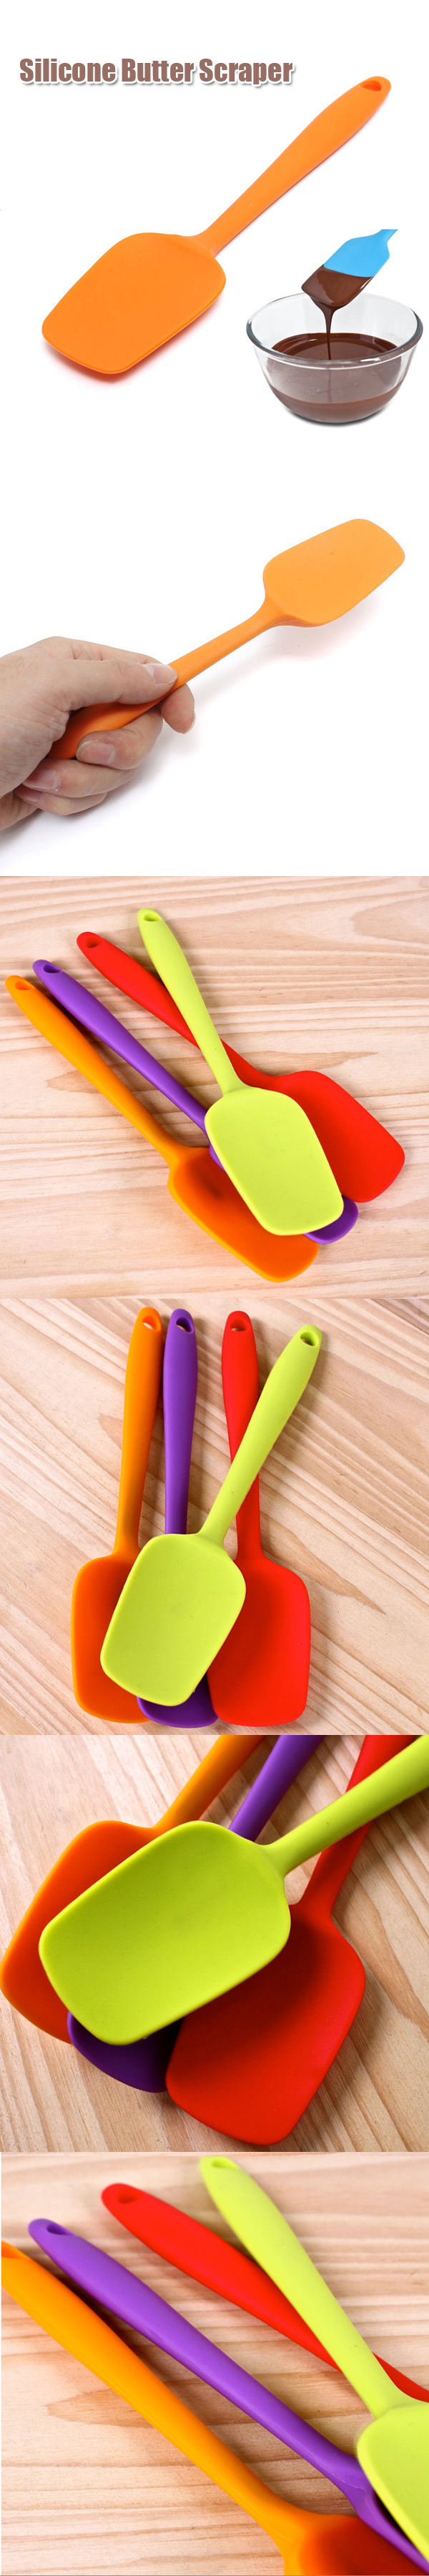 21cm Silicone Baking Cheese Spatula Butter Scraper Chocolate Mixer Cake Baking Tool